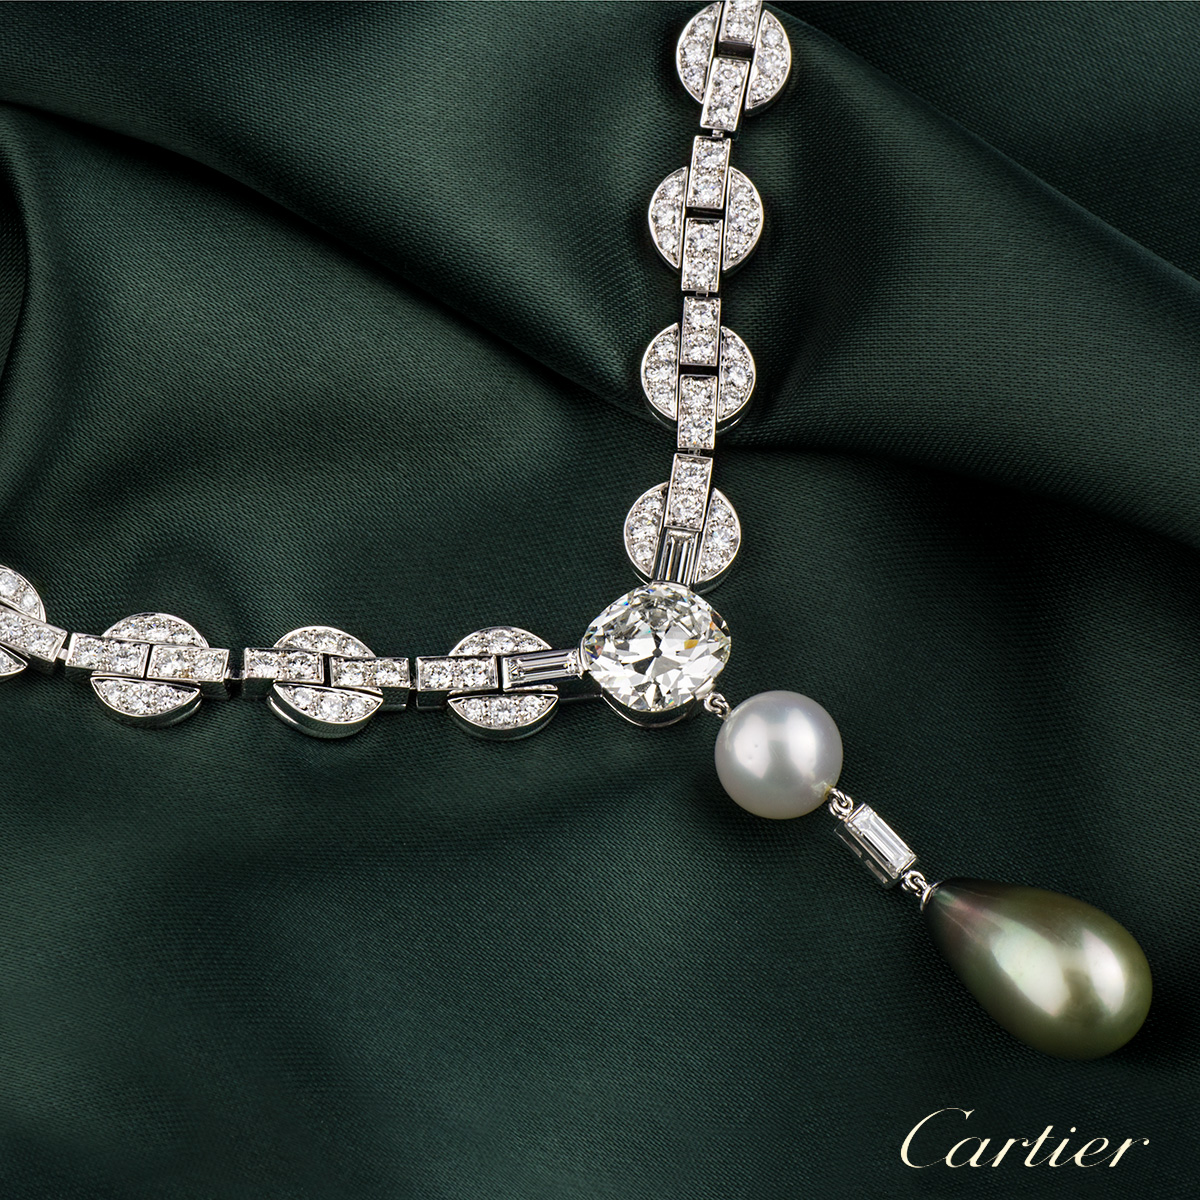 Cartier Orissa Diamond and Pearl Necklace